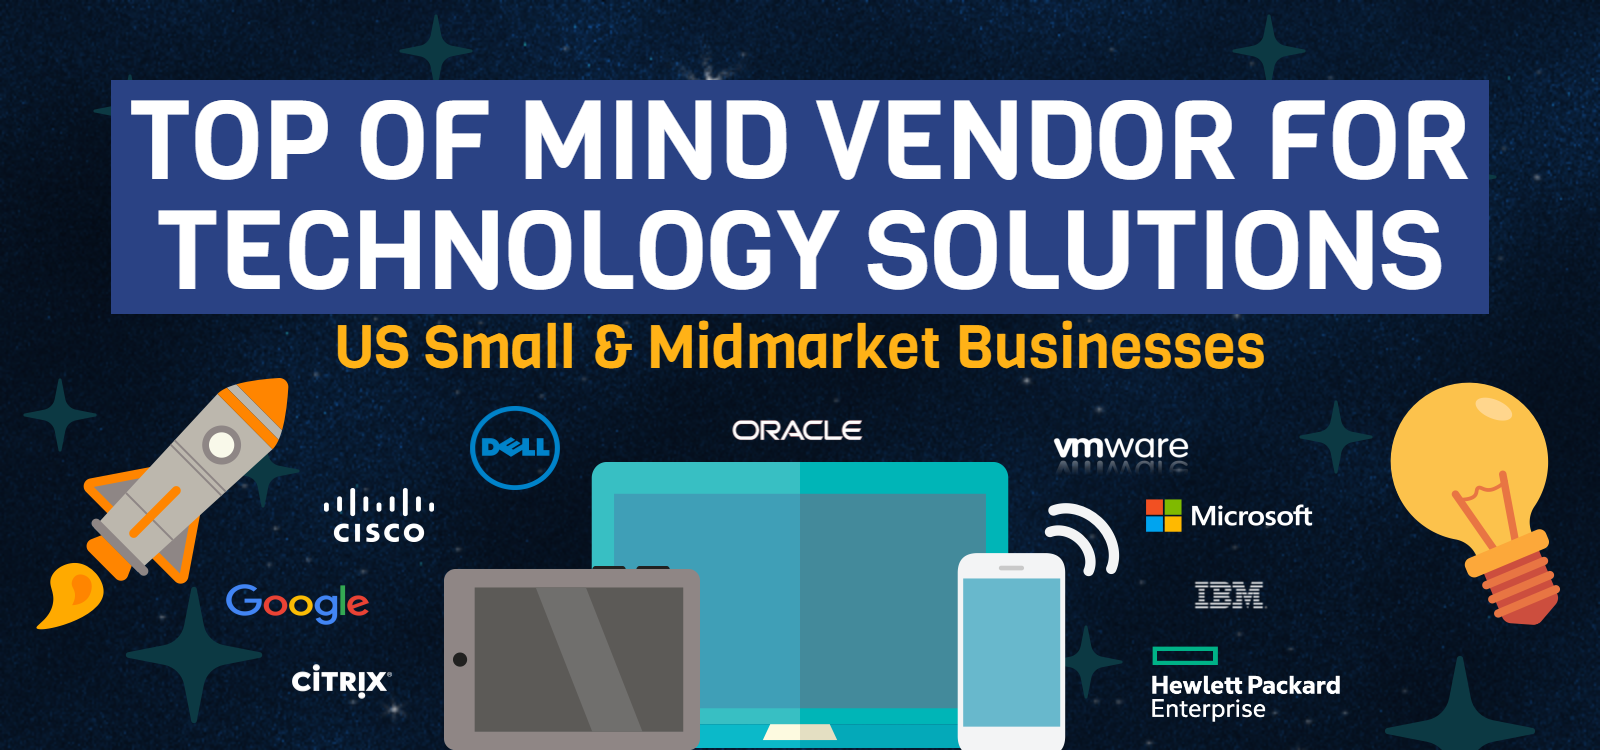 SMB Top of Mind Vendor Infographic